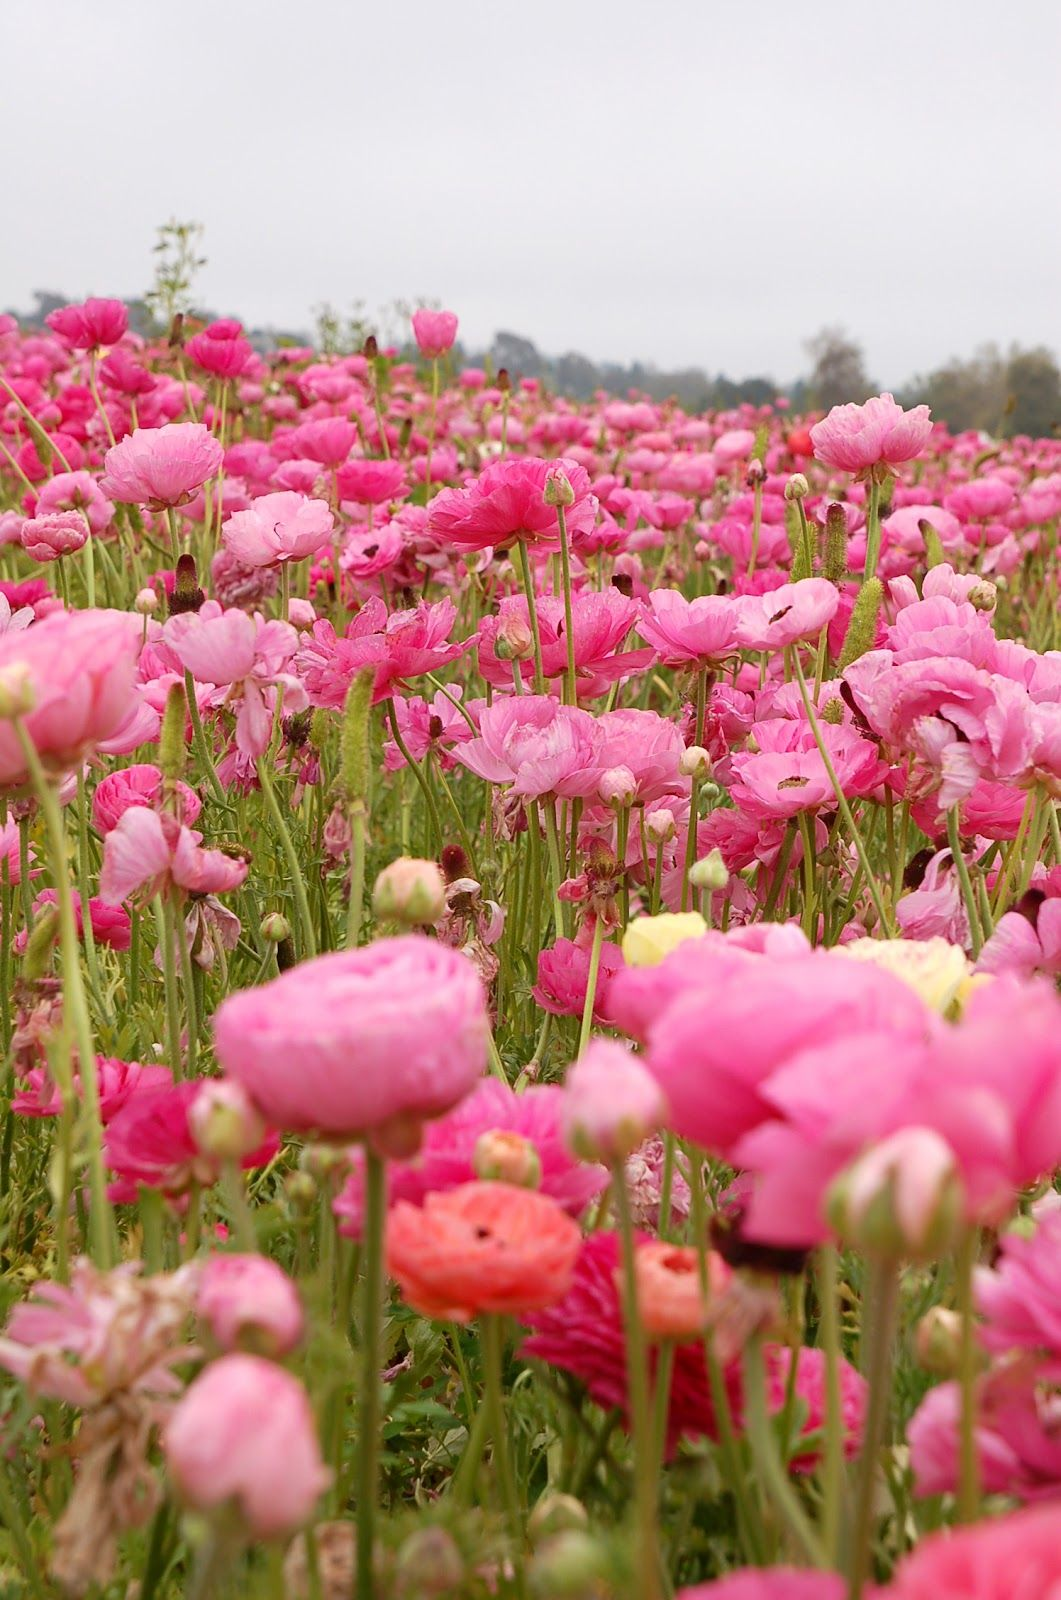 Fields of flowers make me very happy. I also photograph flowers ...